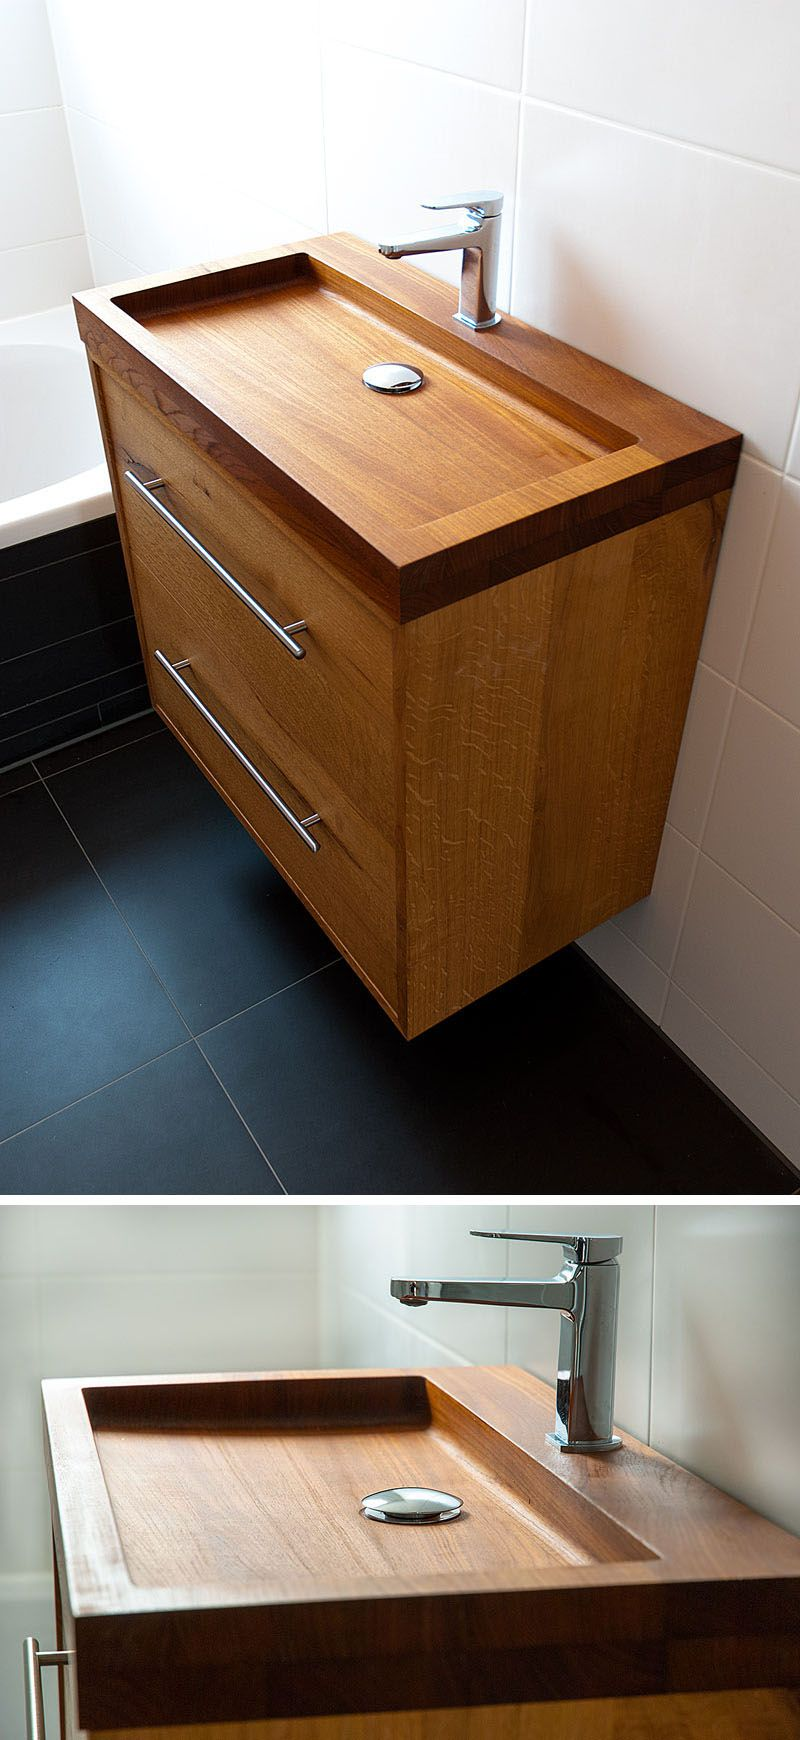 Bathroom Design Idea Install A Wood Sink For A Natural